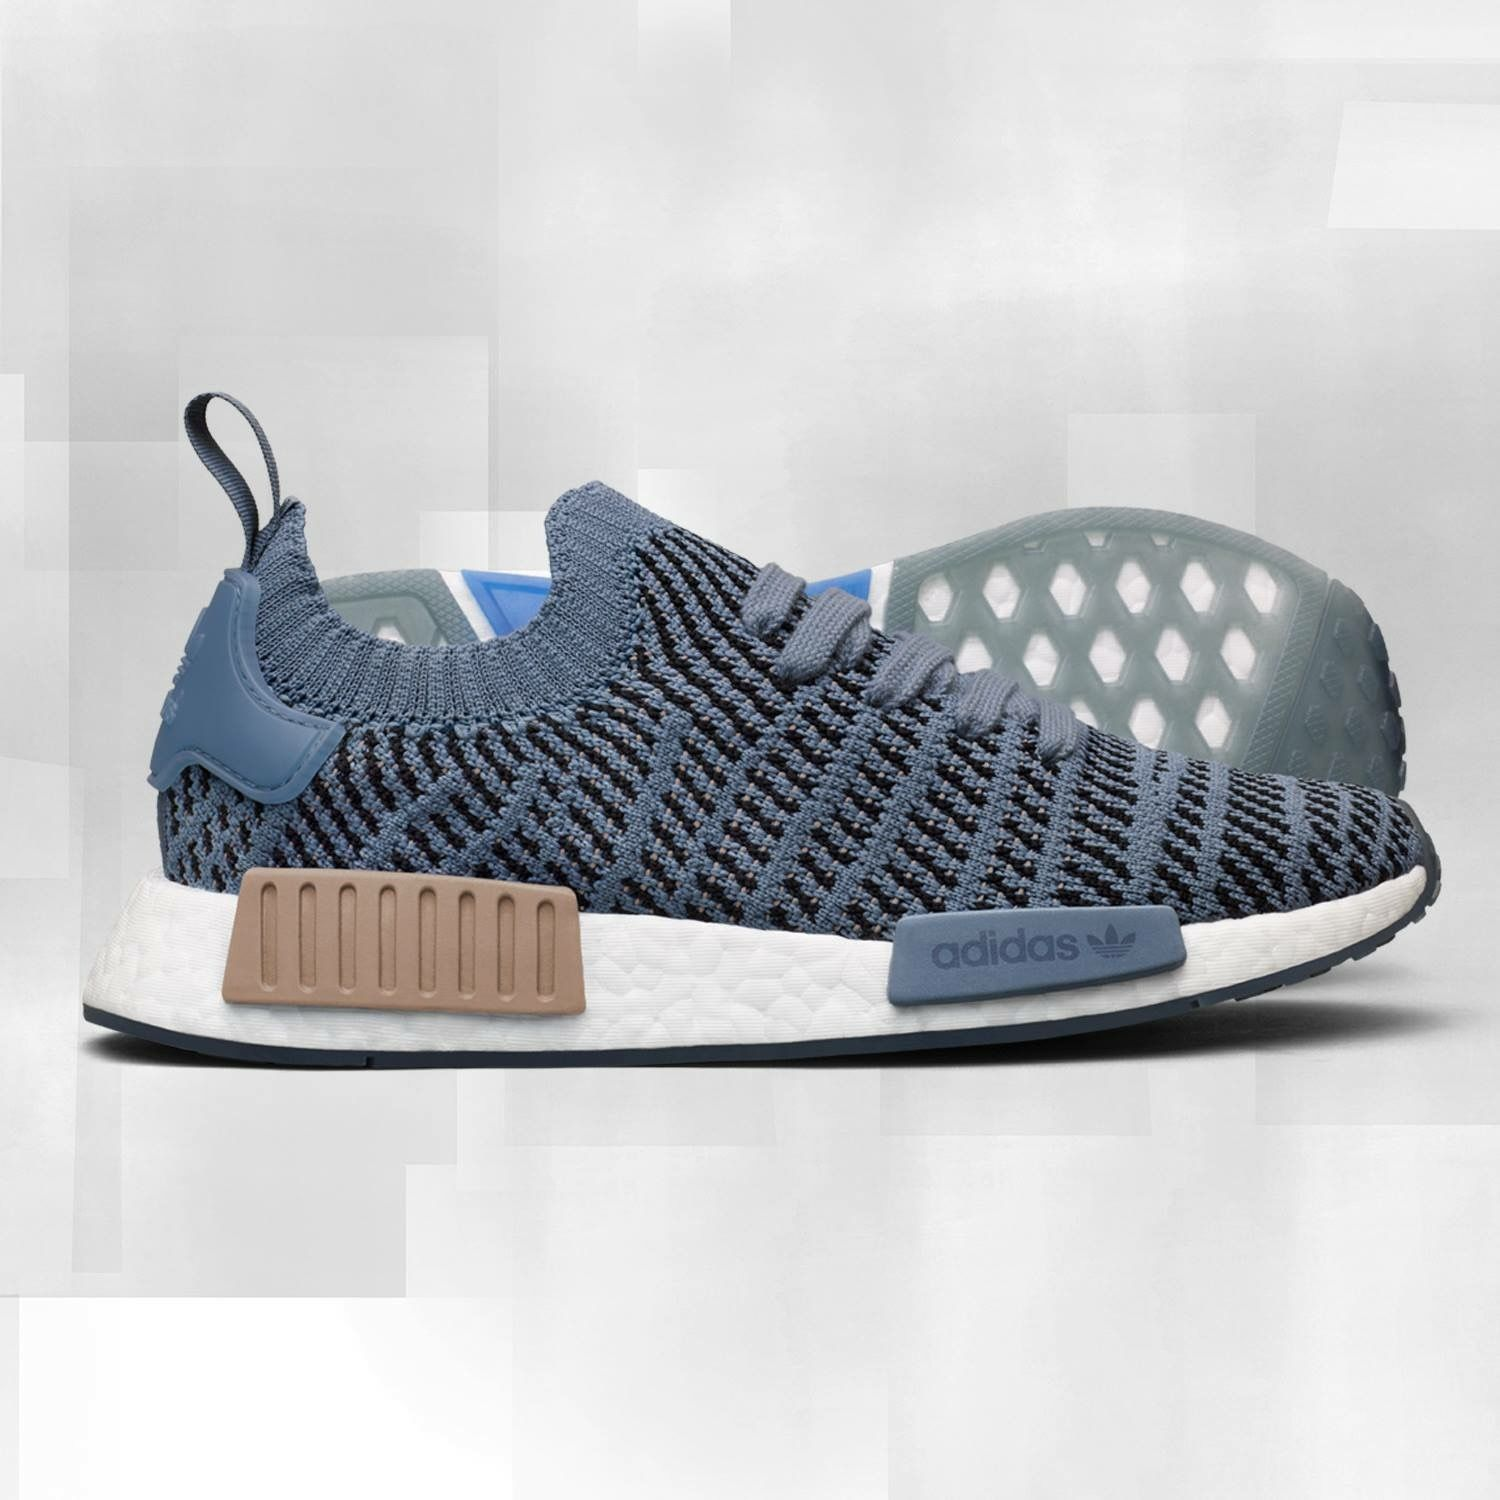 ... picked up adidas Originals NMD R2 Fashion Sneakers to wear every day  ... 967de  nice shoes ... 9931c3adf